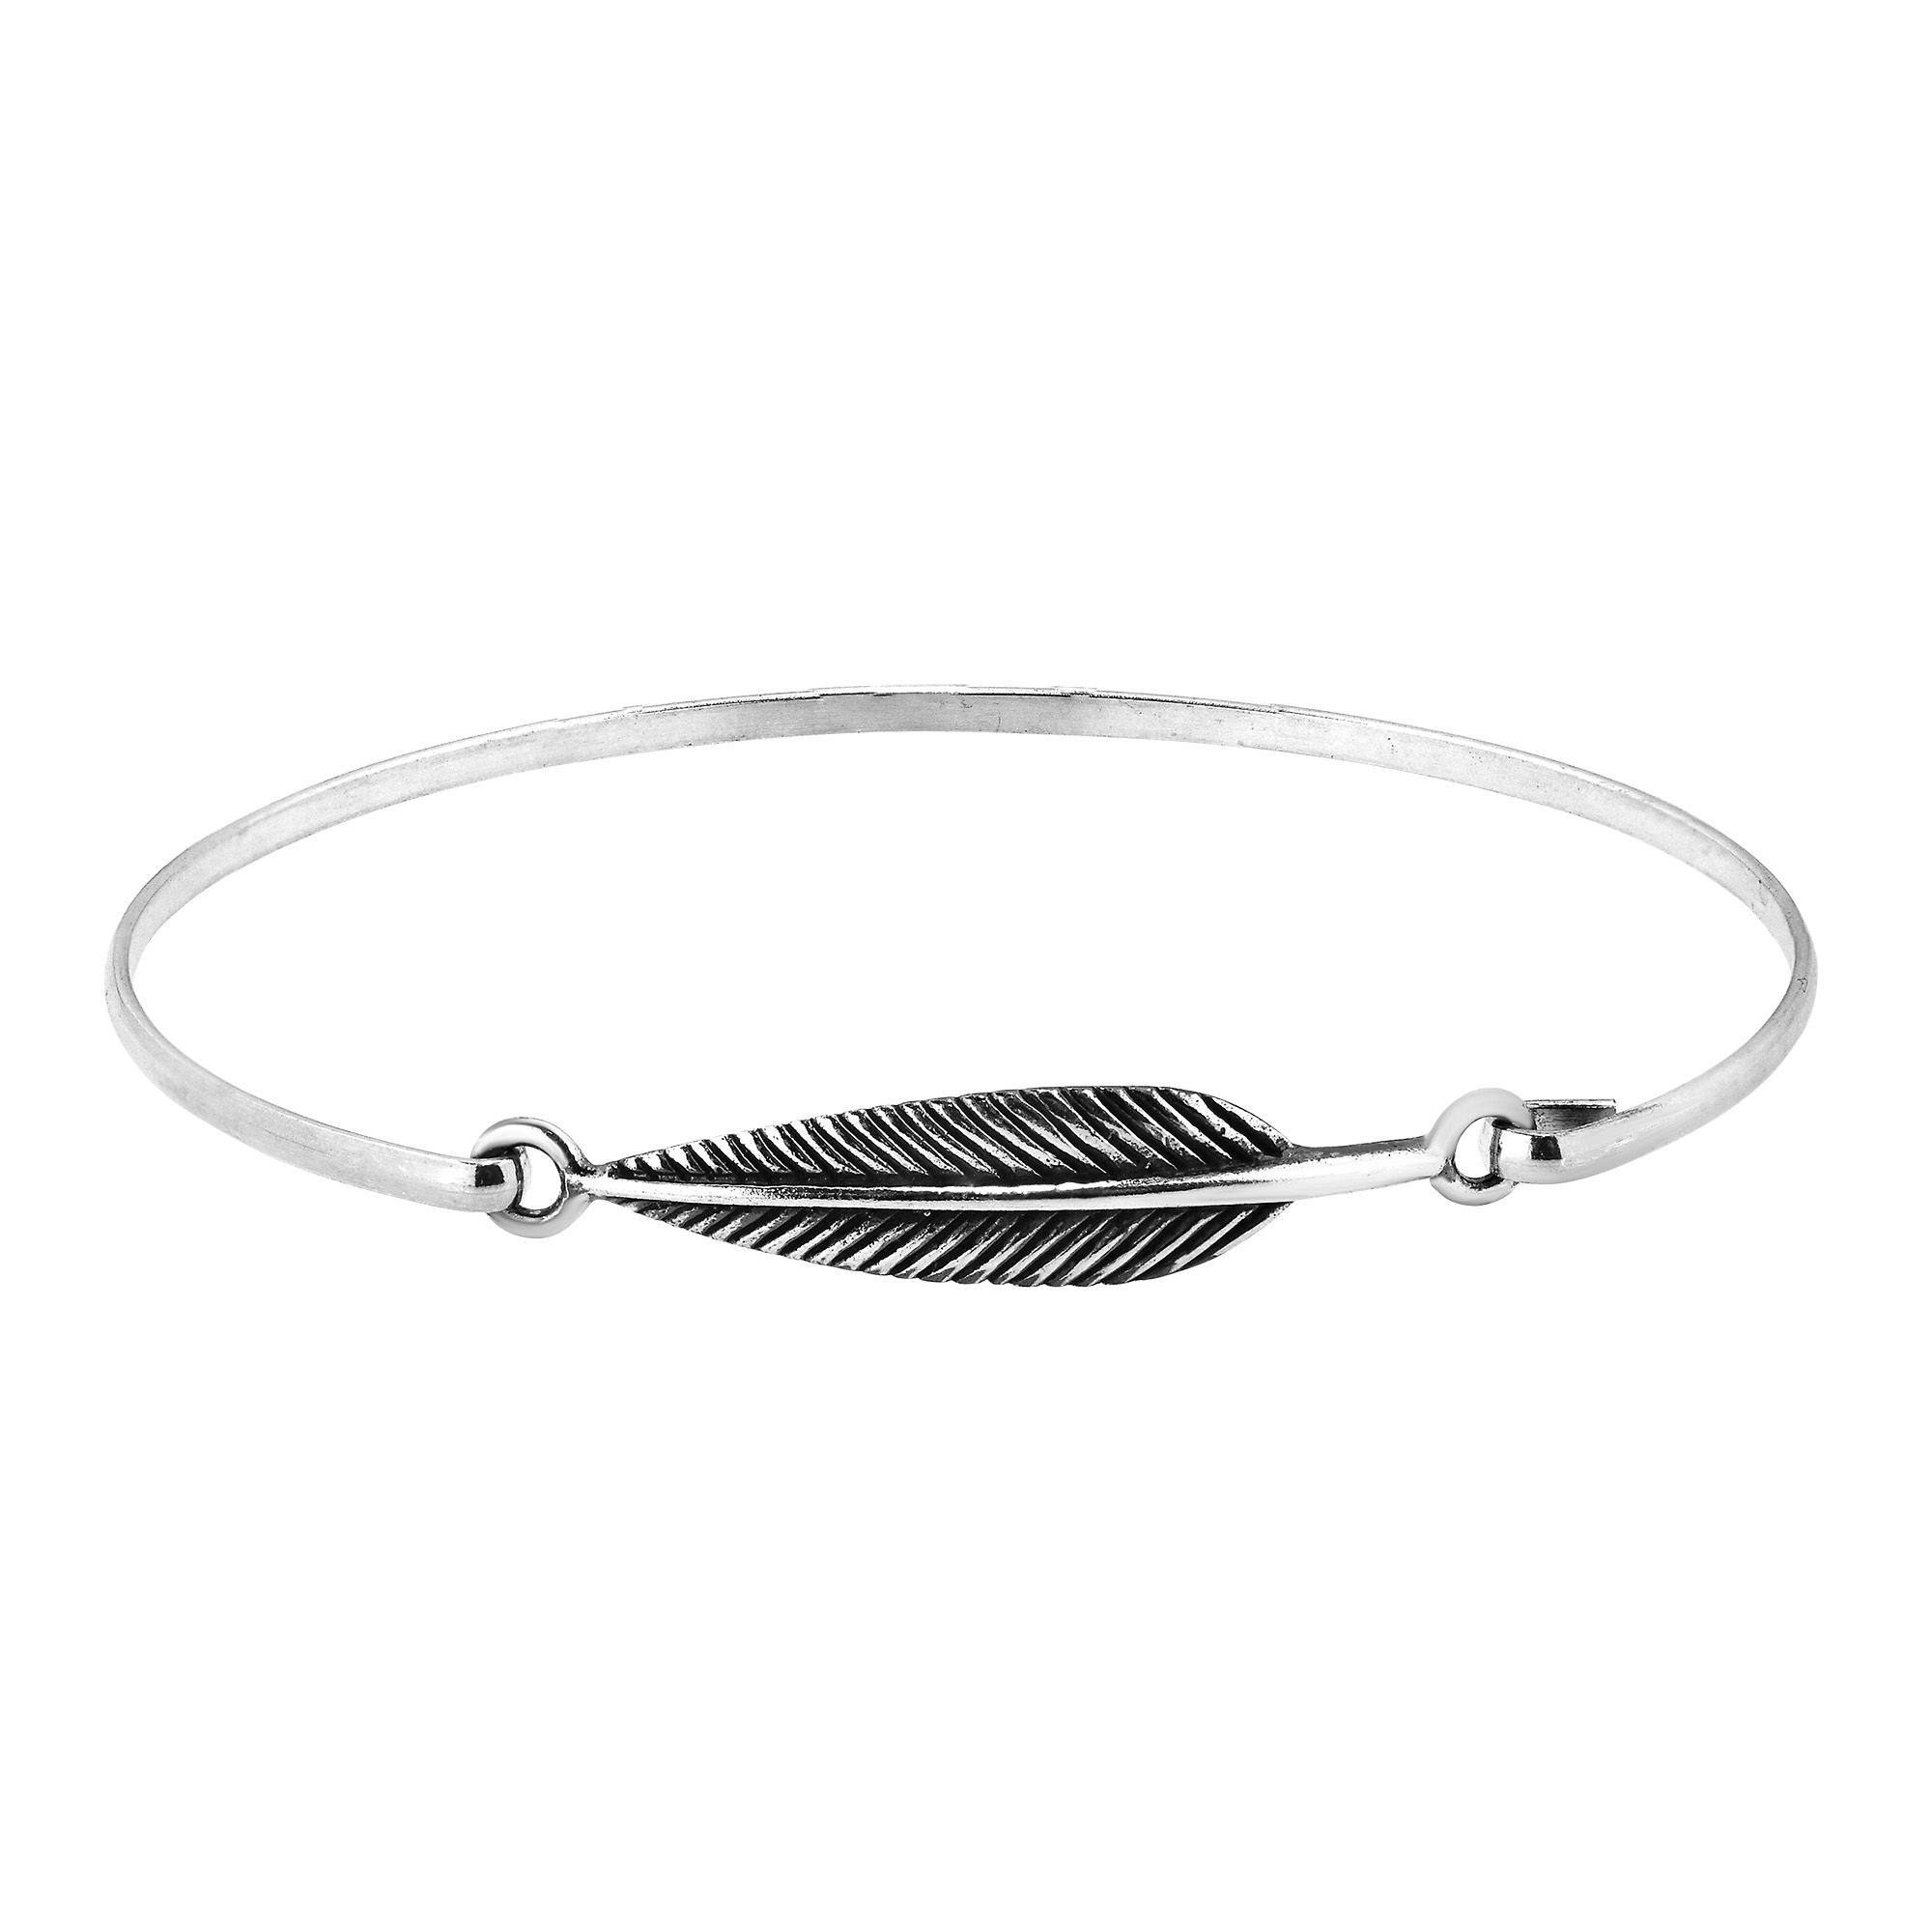 mens light range s plain sterling for and men silver curb bangle bangles bracelets bracelet huge jewellery women wide heavy